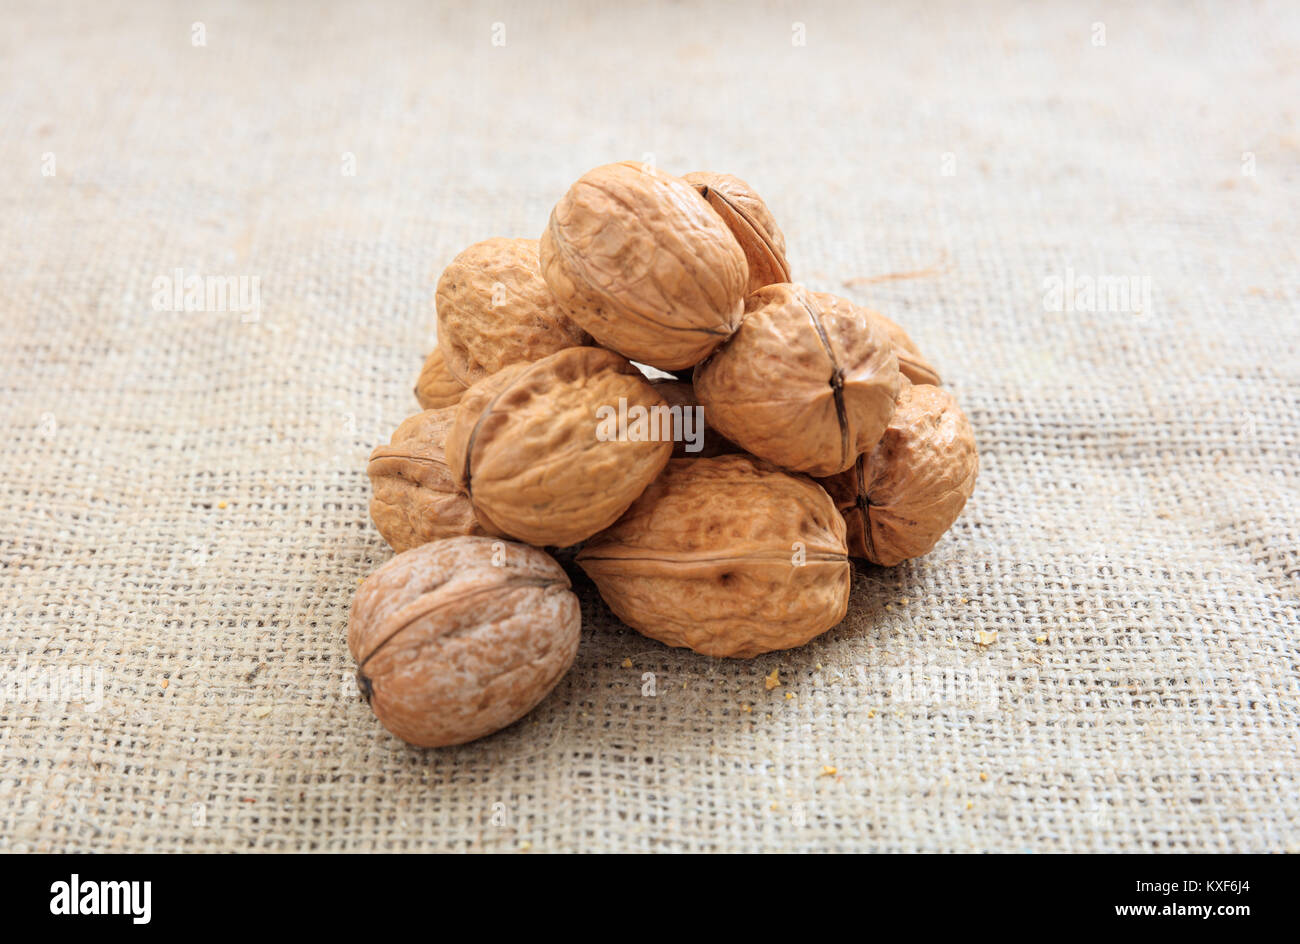 Walnuts in shell on a burlap - Stock Image